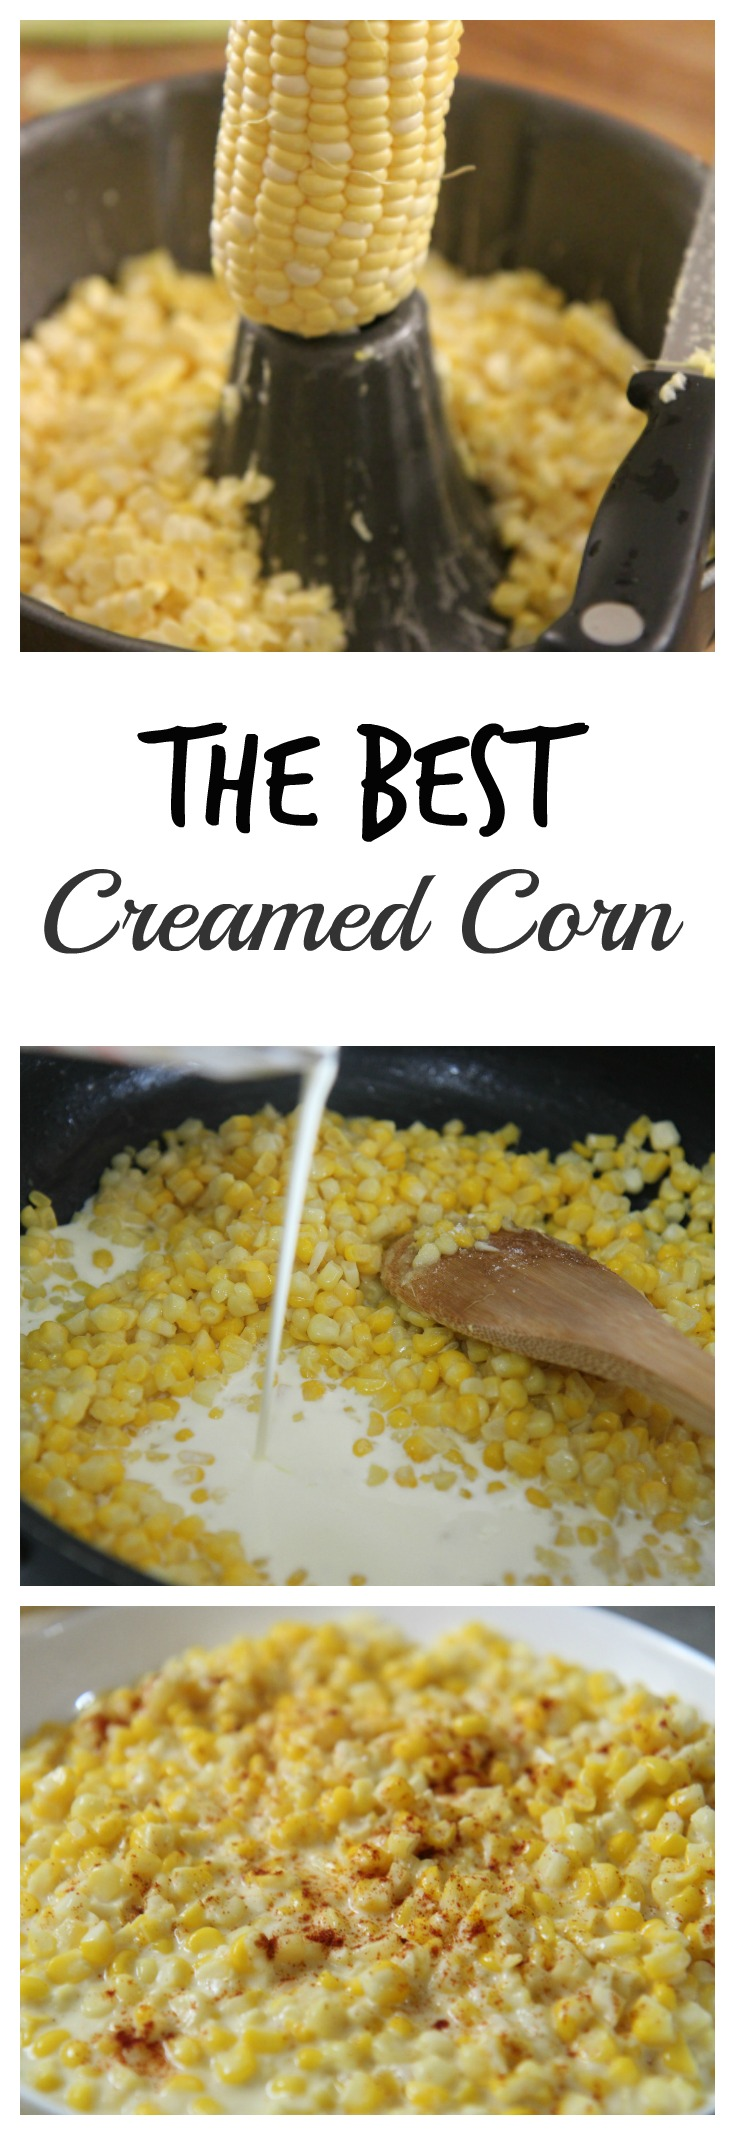 The Best Creamed Corn | Cooked by Julie